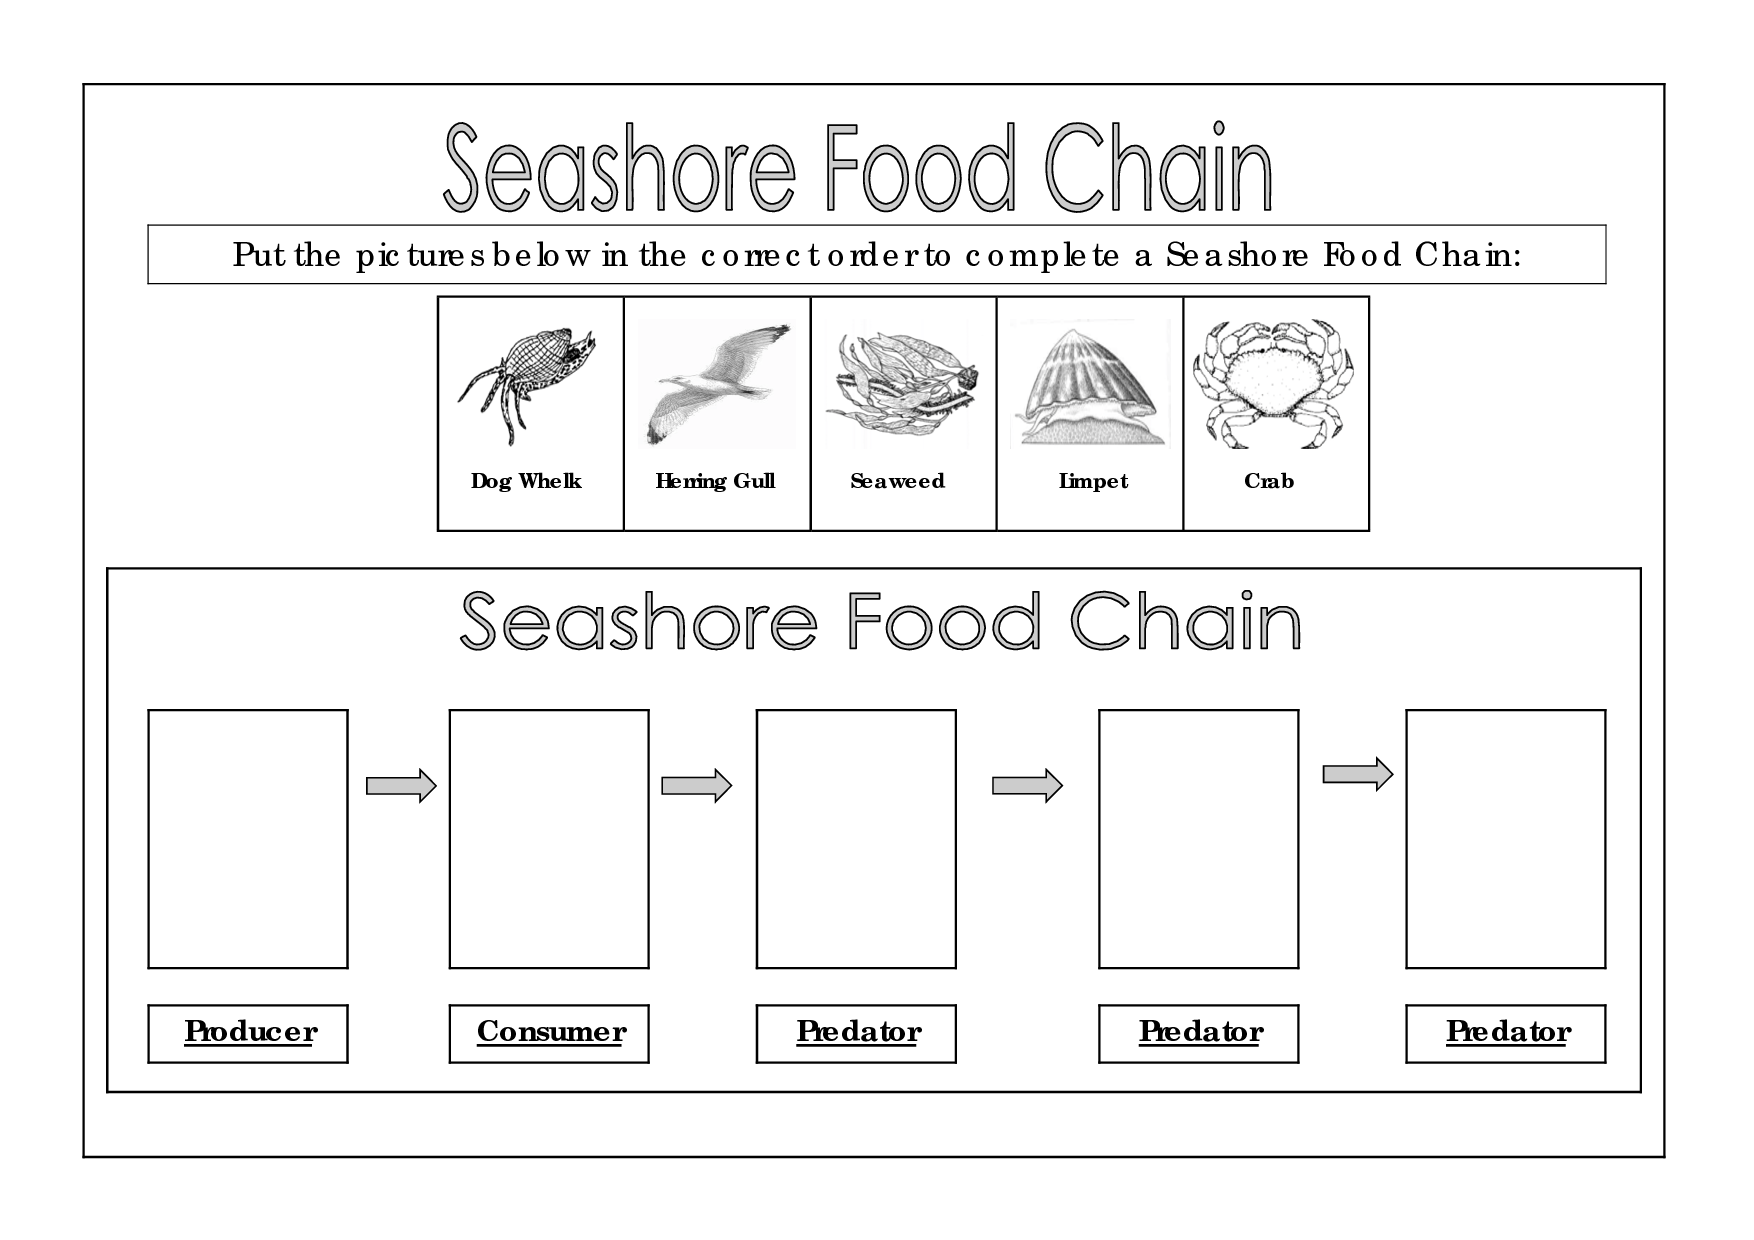 Seashore Food Chain Chains Webs Projects Ideas For Mes Art Tech Kids Learn Circuitry From Blobz And Basic Programming Life Science Apex Predator